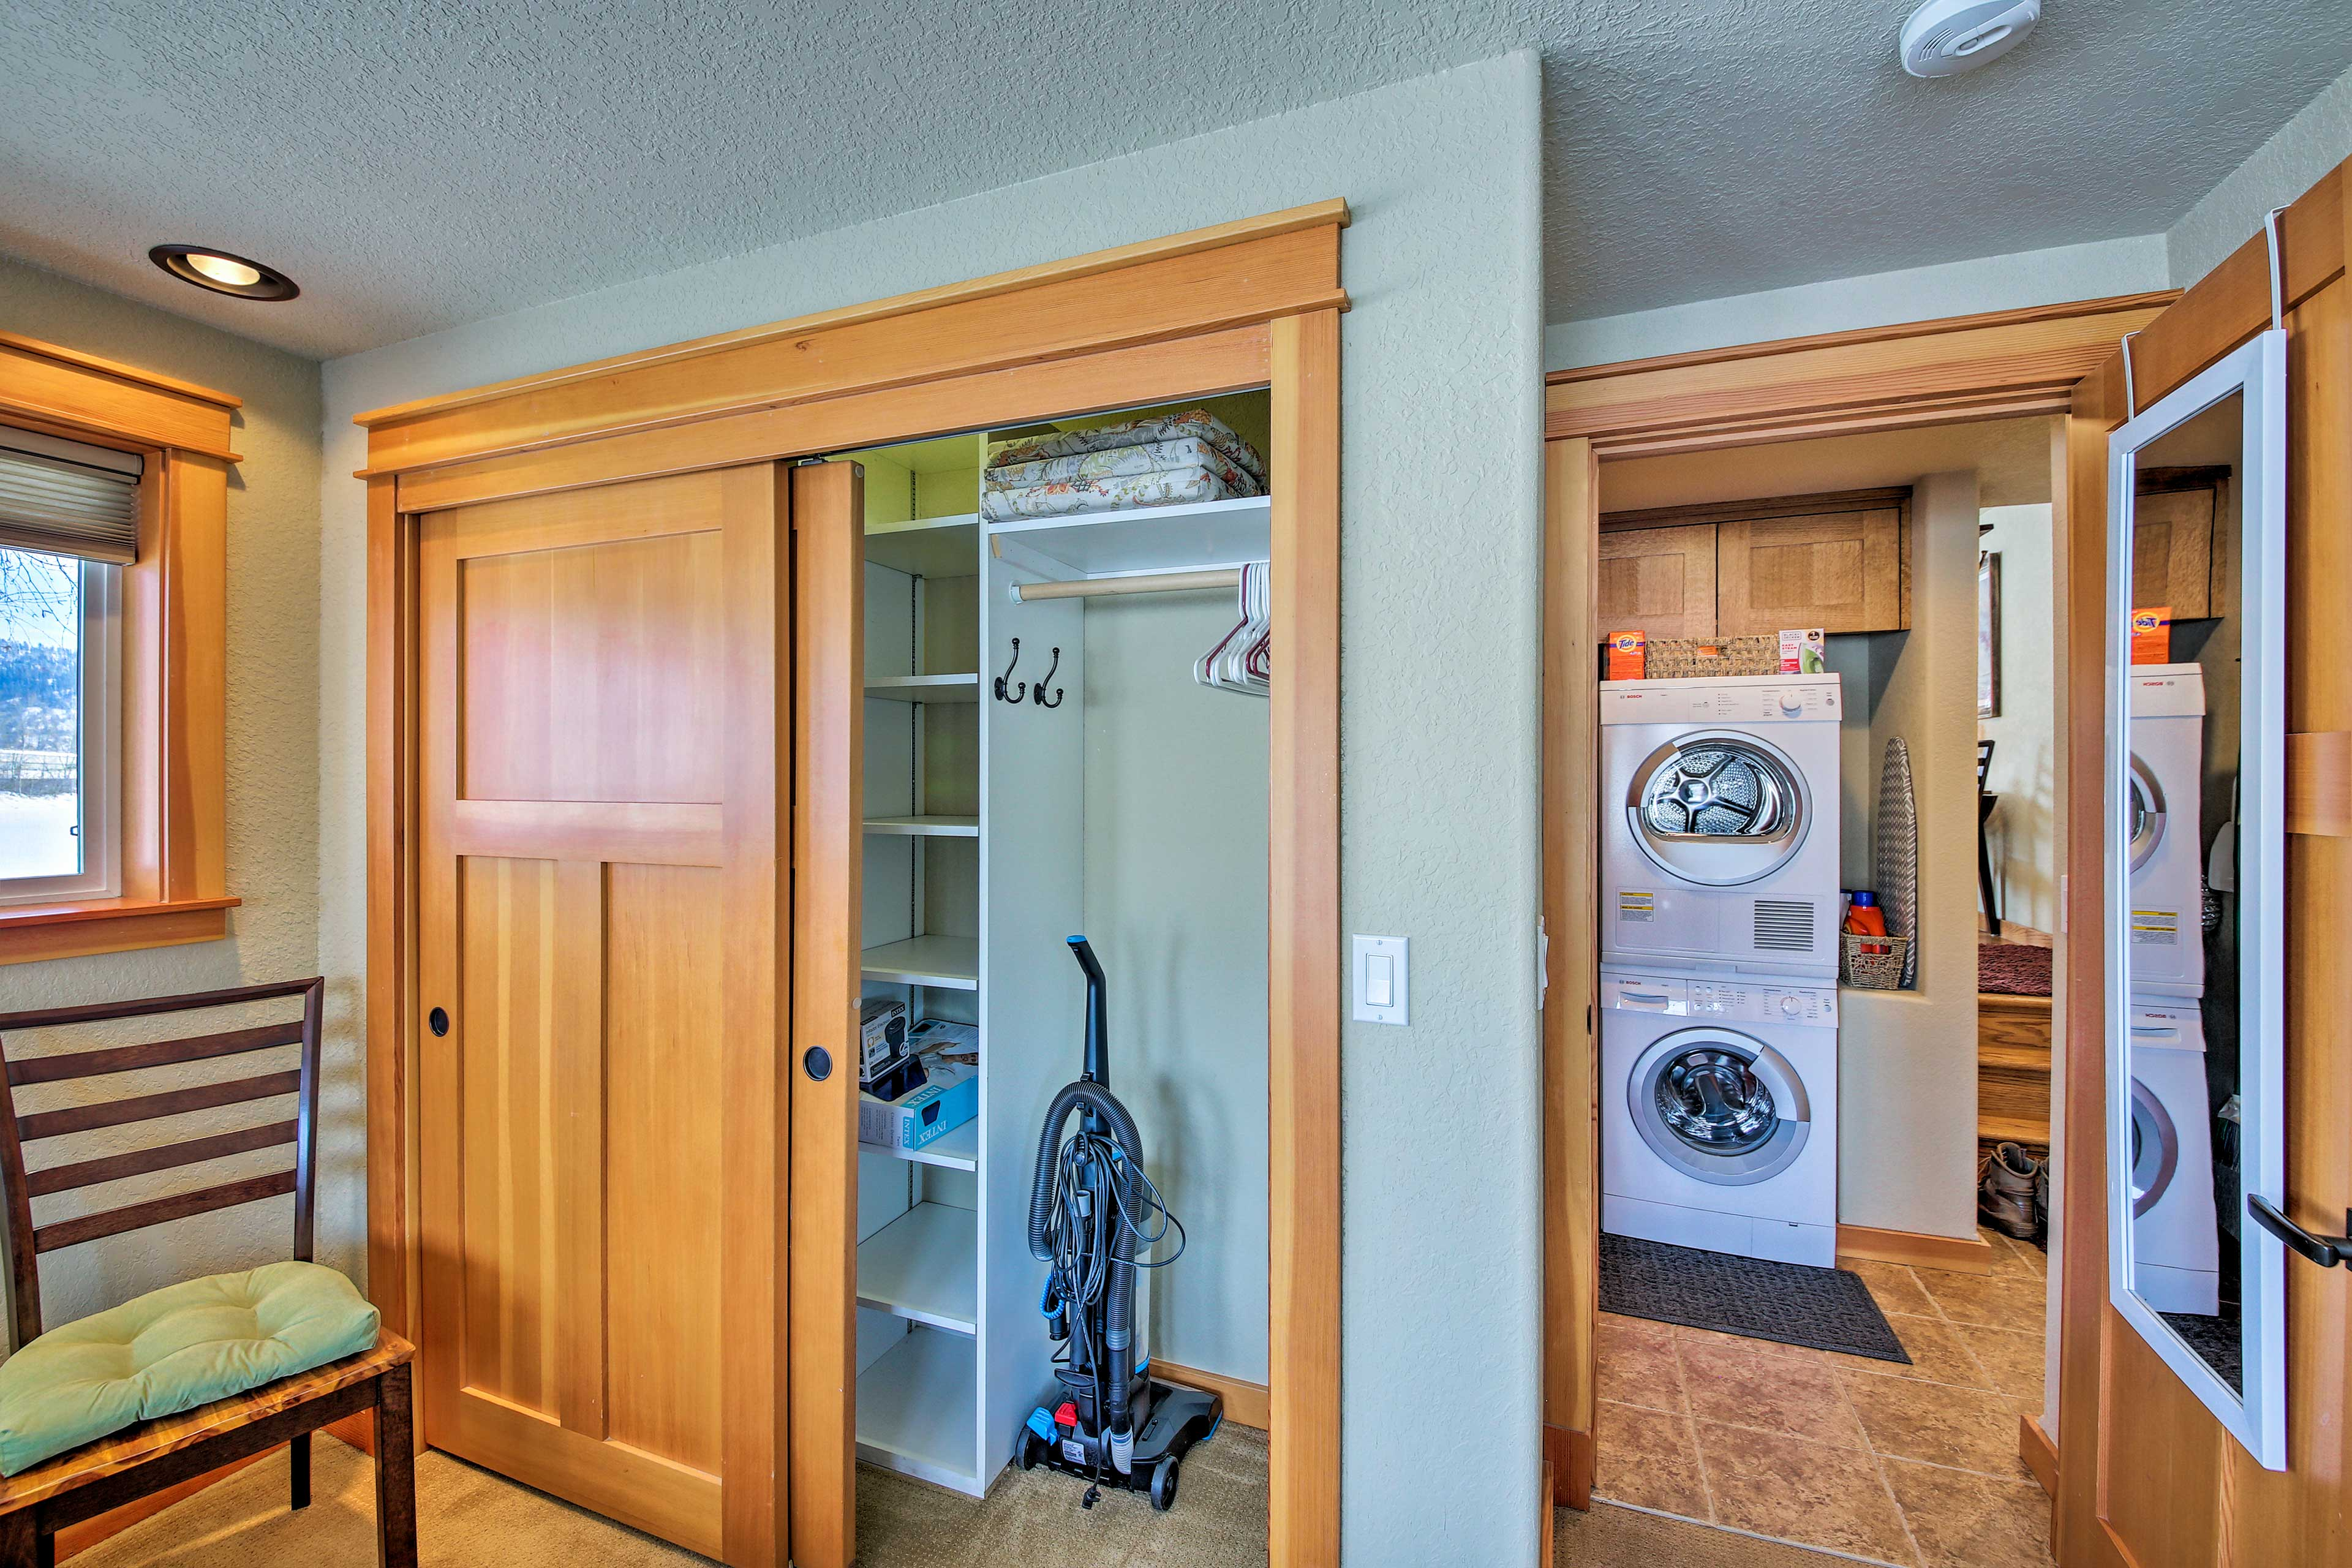 Use the in-unit laundry machines to keep your clothes smelling fresh.